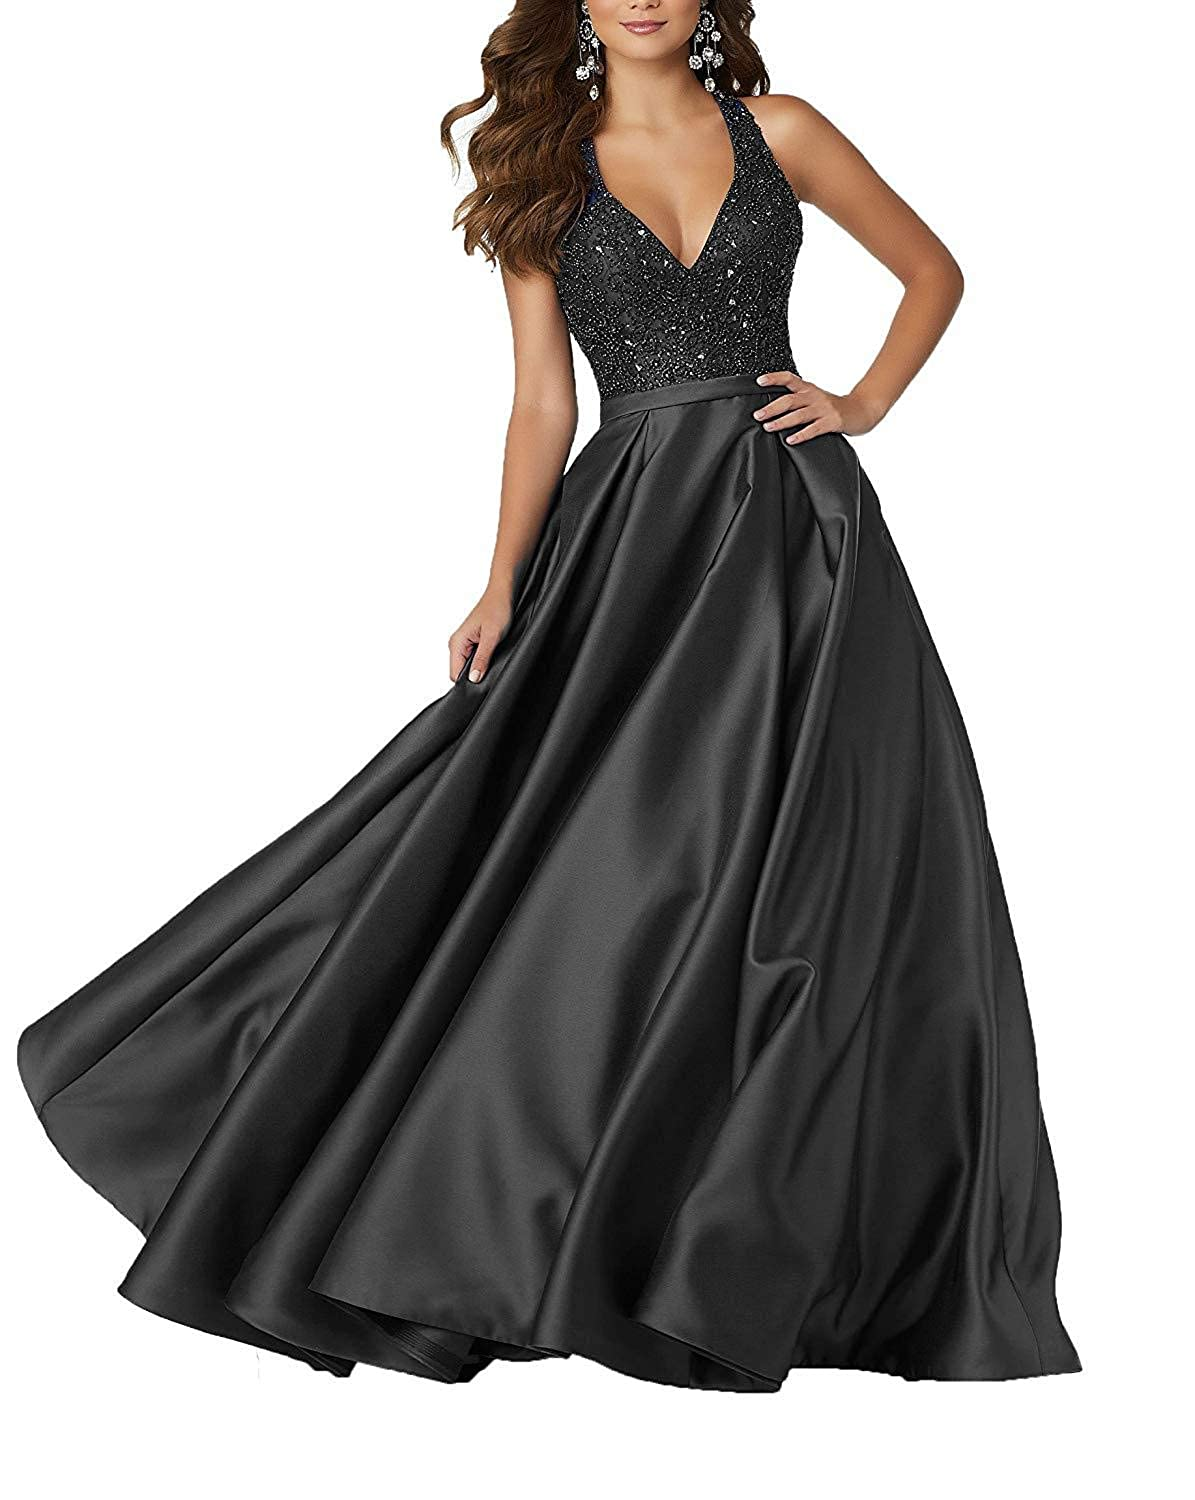 Black Staypretty Long Prom Gowns for Women Beaded V Neck Evening Dress Satin Aline Backless Formal Gown